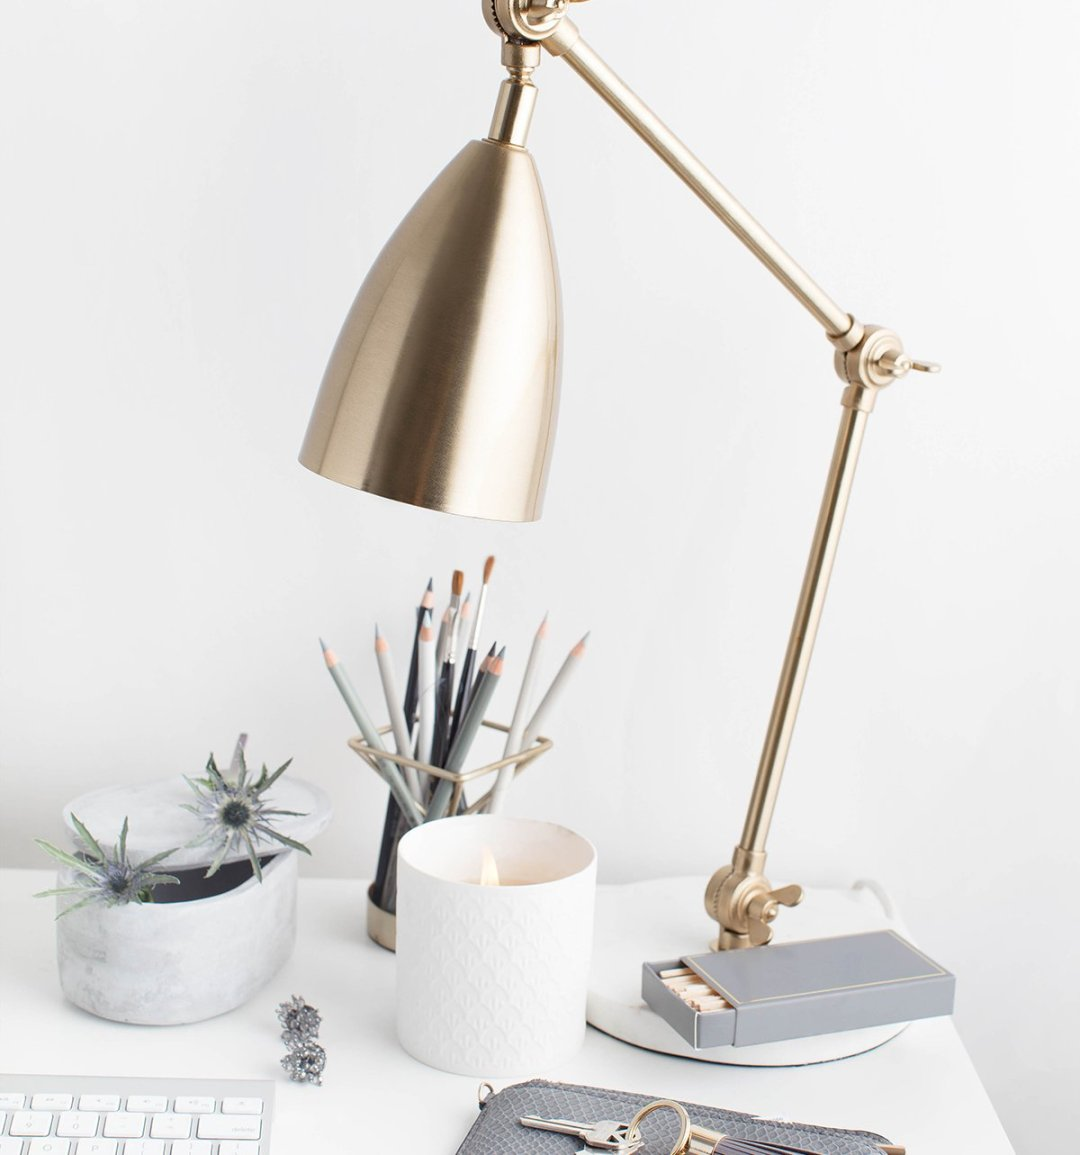 Styled desktop with keyboard, lamp and pencils